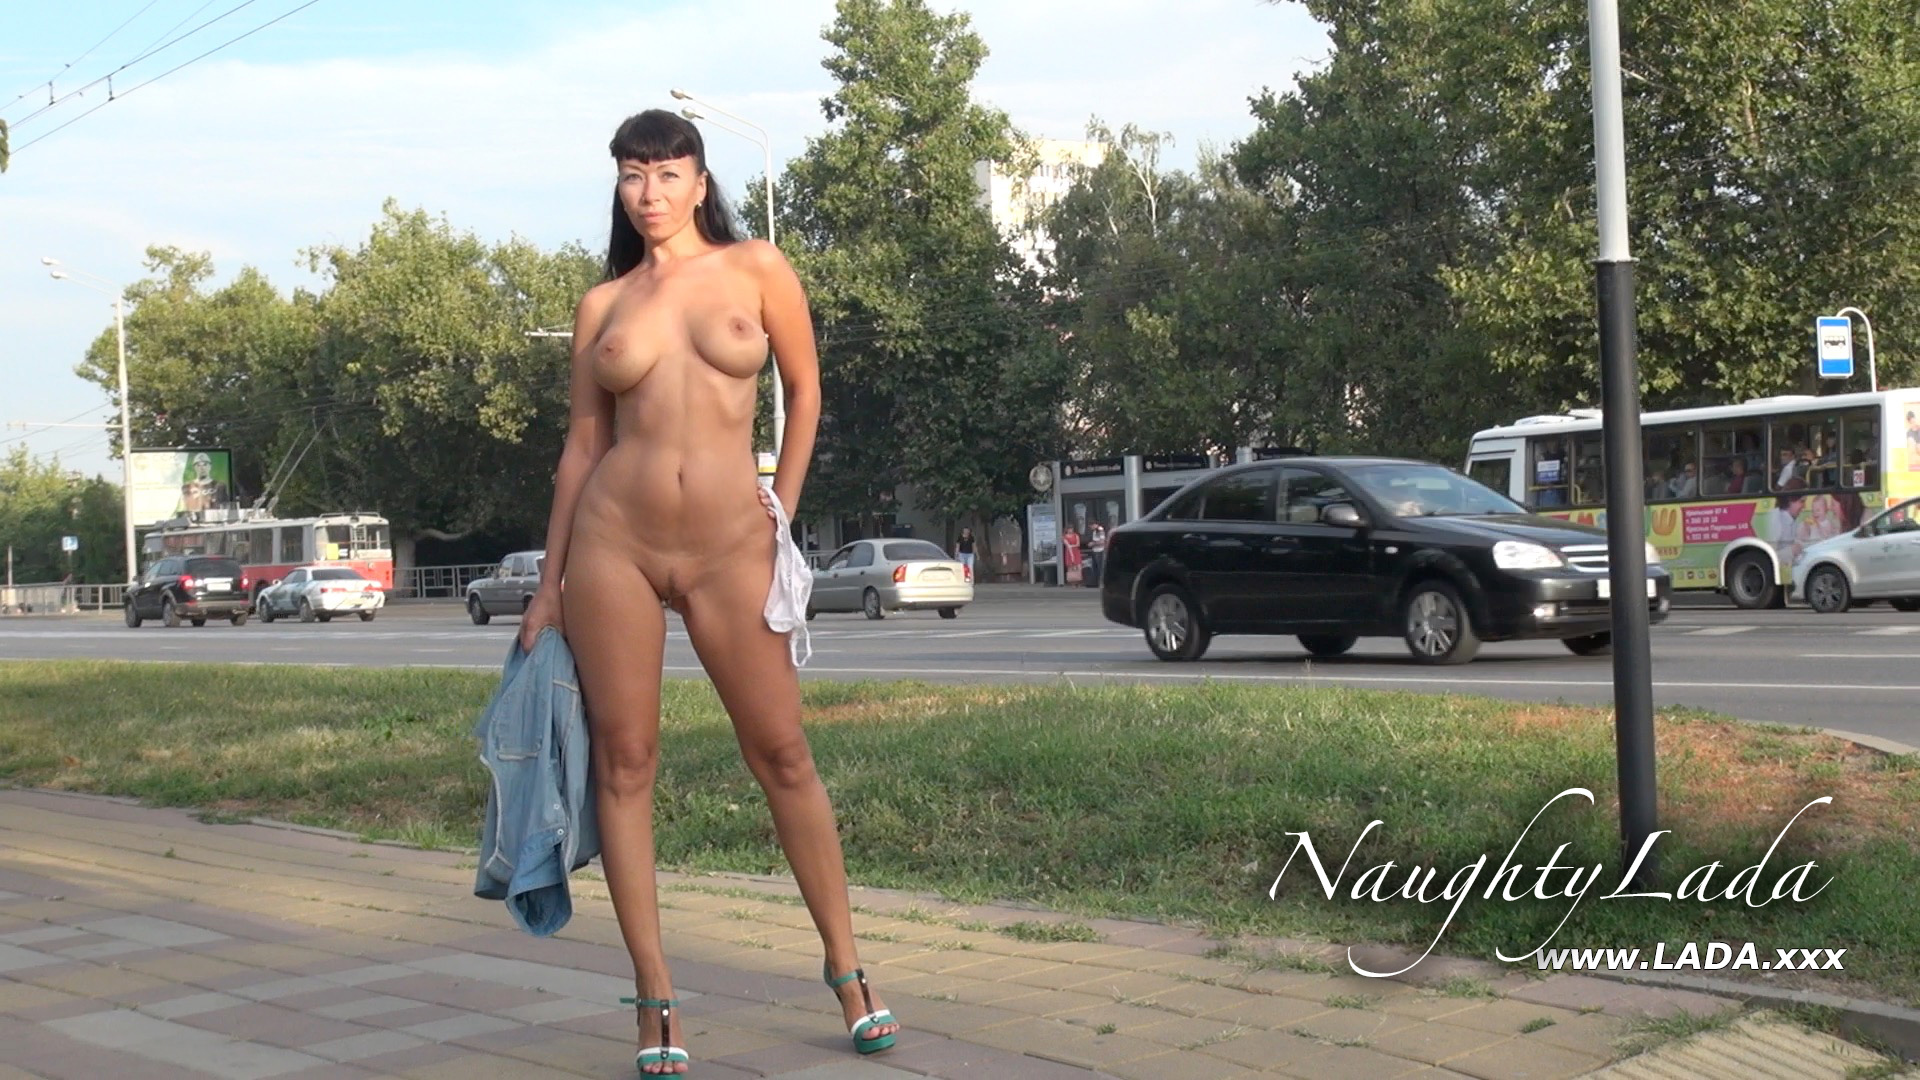 Around in milfs walking public nude